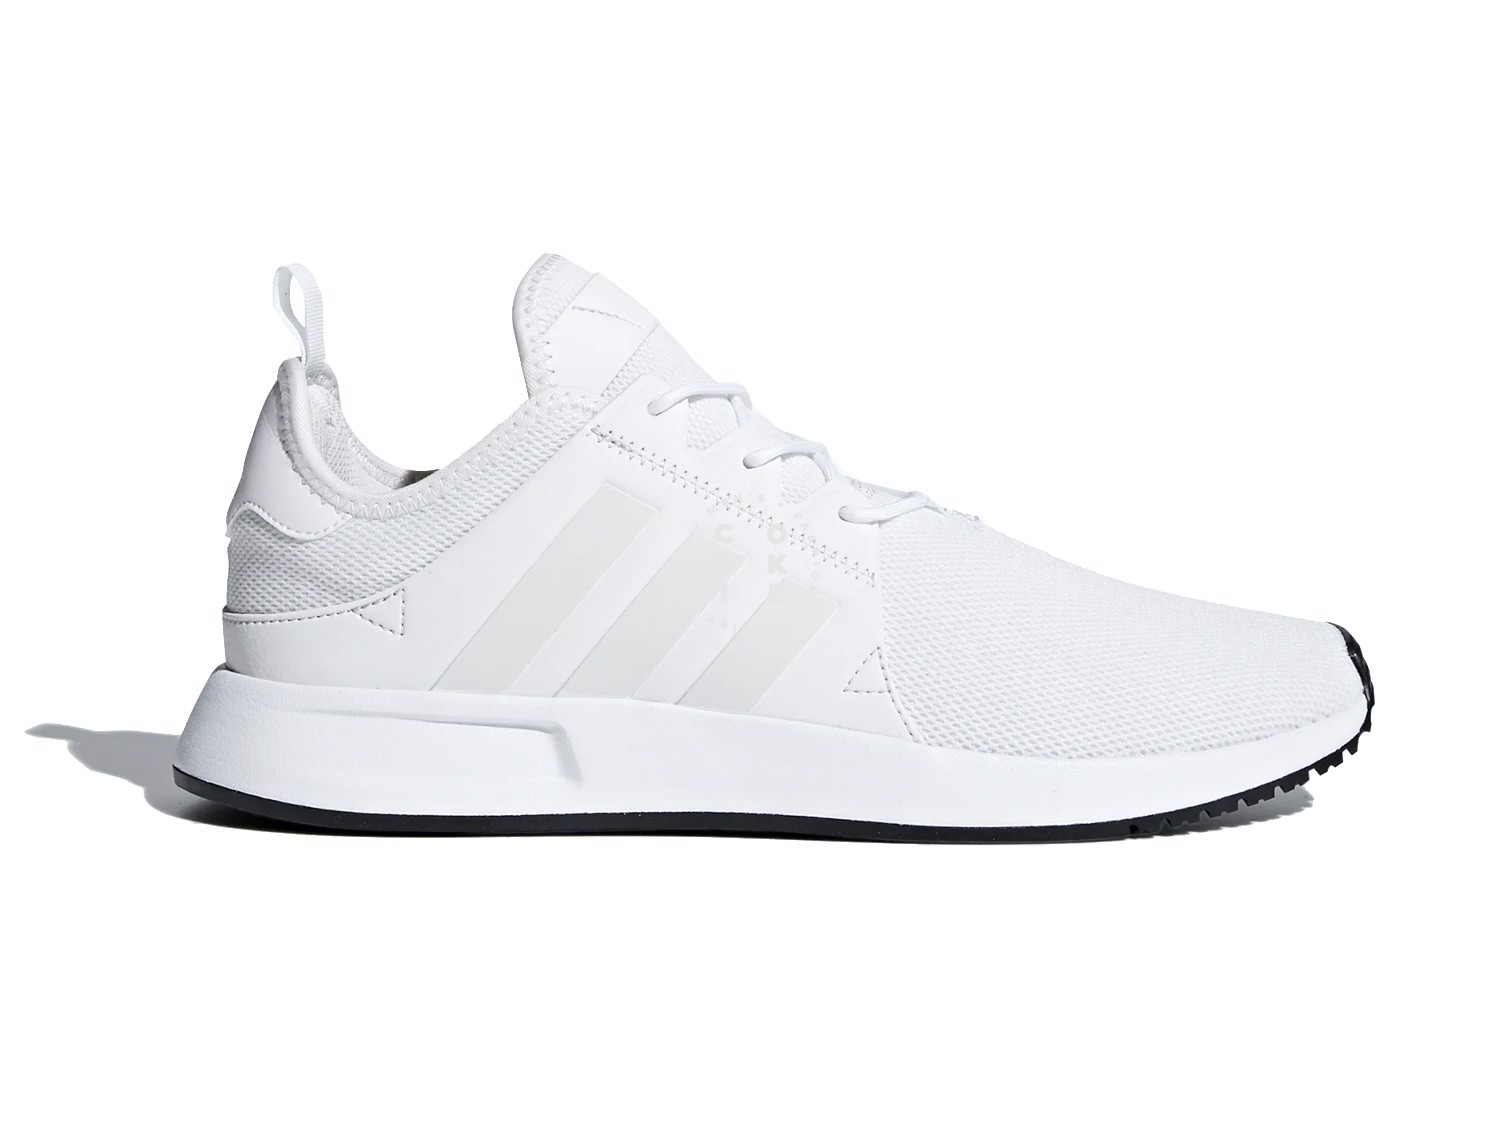 Giày adidas X_PLR Intage White / Core Black - BY8690